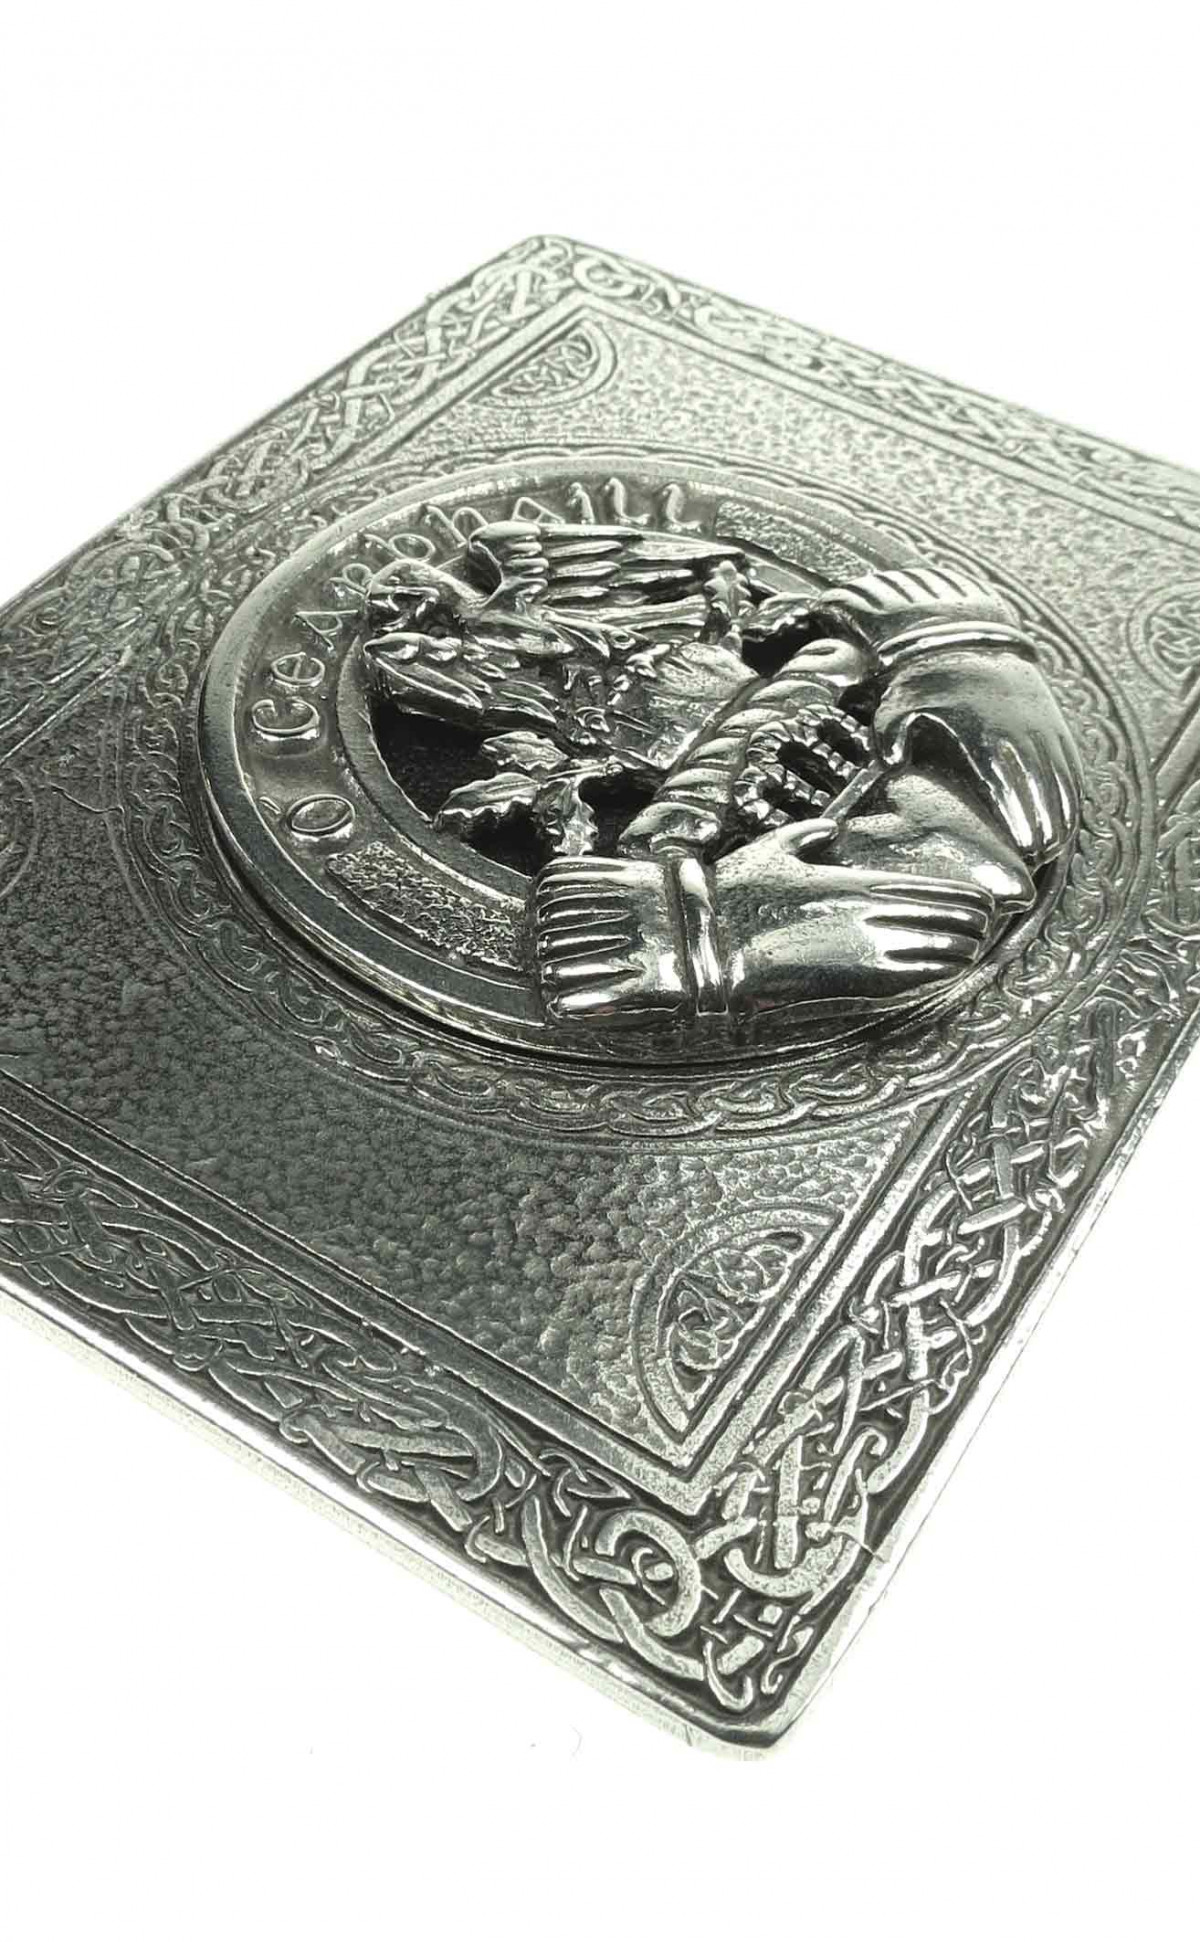 gaeli-sr_gaeli_irish_clan_crest_buckle_2